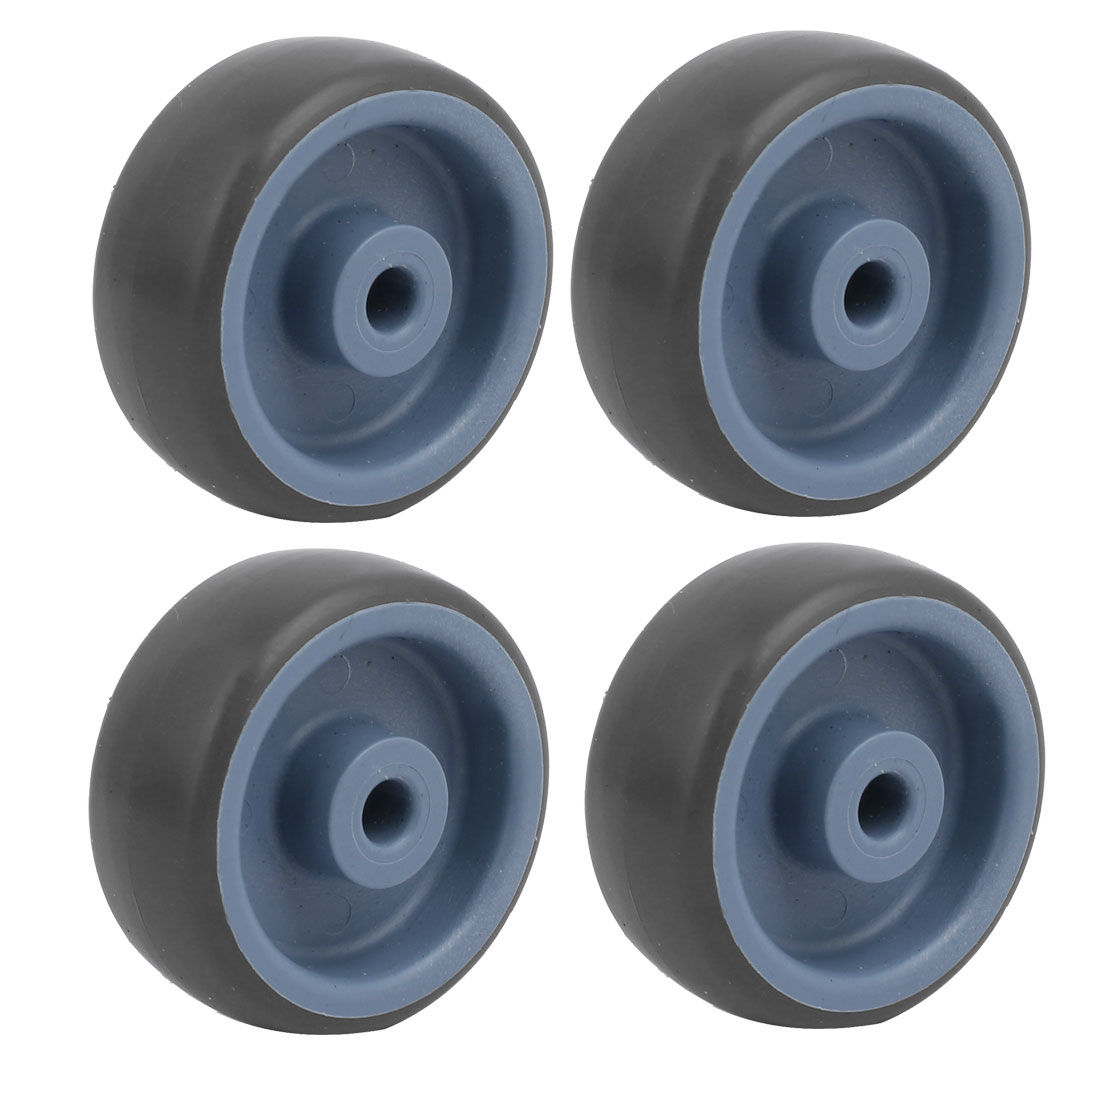 Unique Bargains 2-inch Diameter TPR Wheel 6mm Bore Trolley Caster Pulley Roller 4pcs